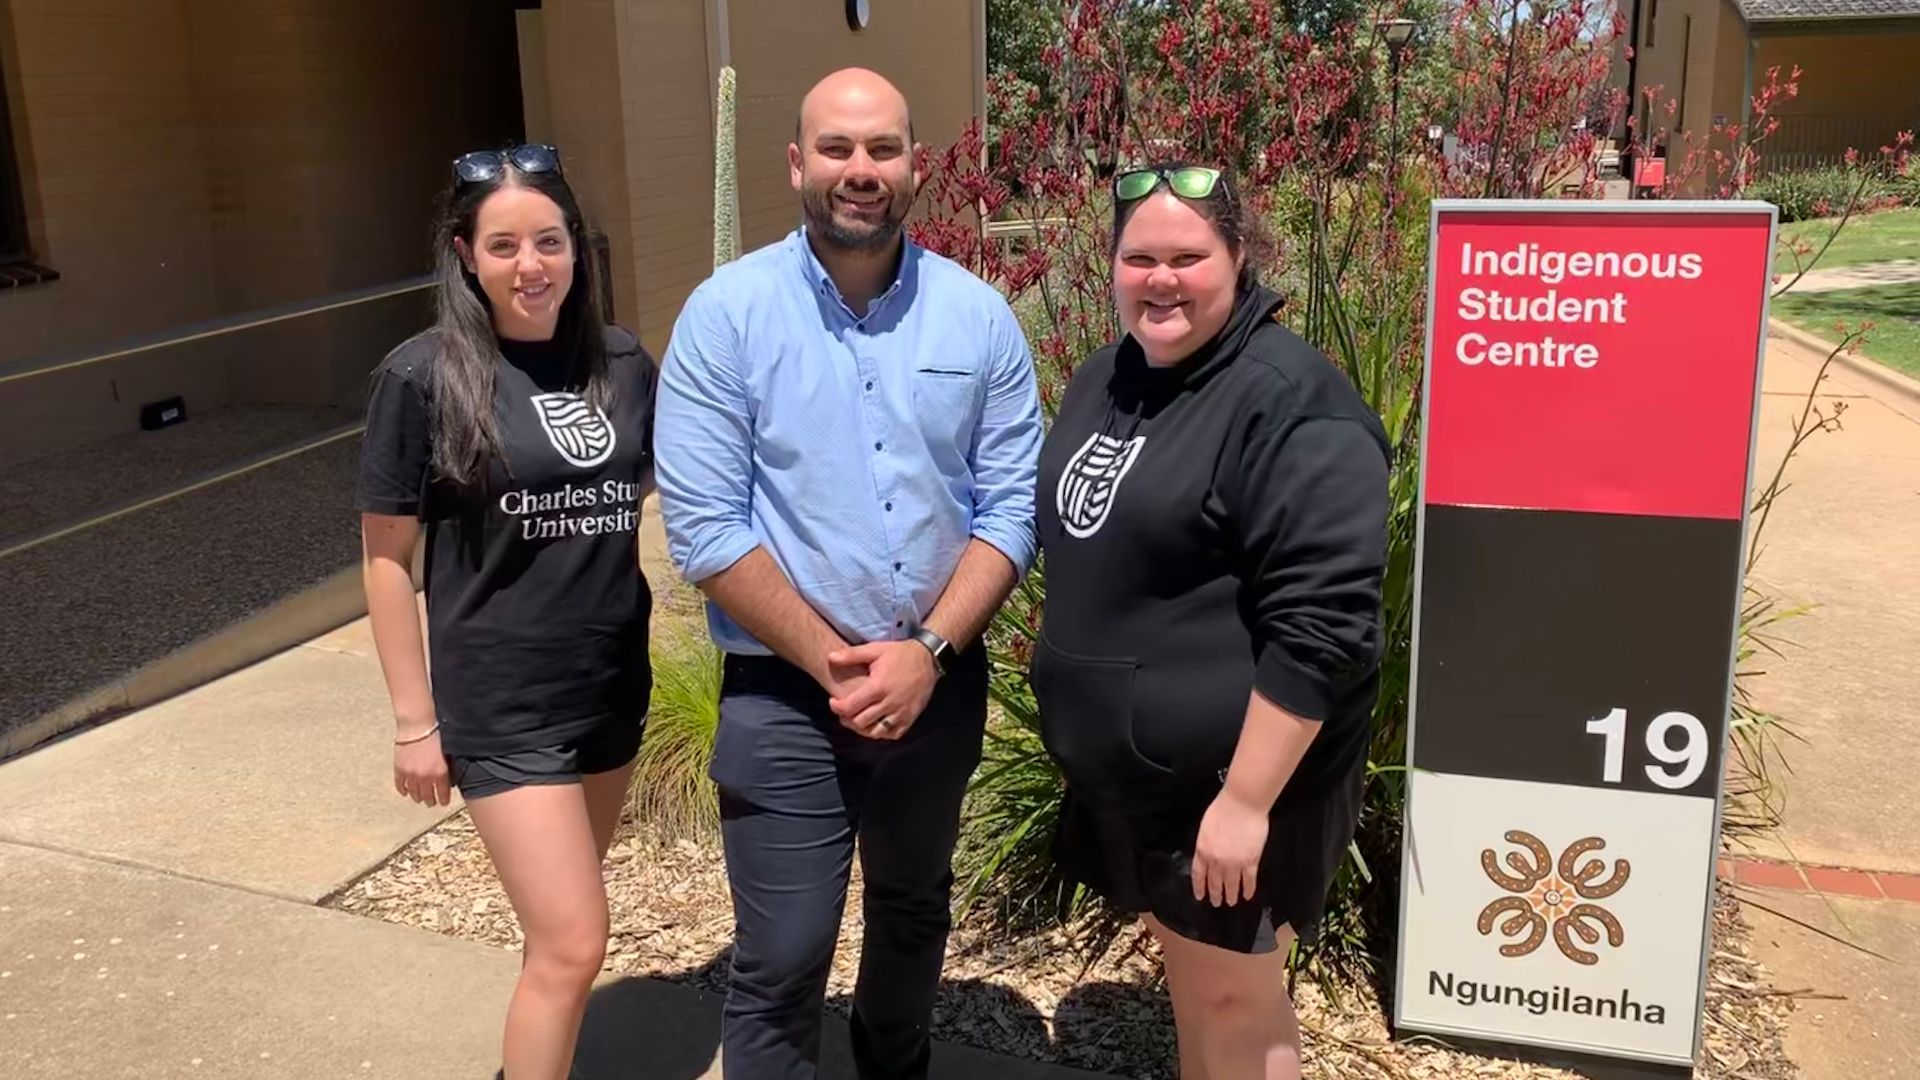 Prospective students get a taste of university life with Charles Sturt's Indigenous Access Program